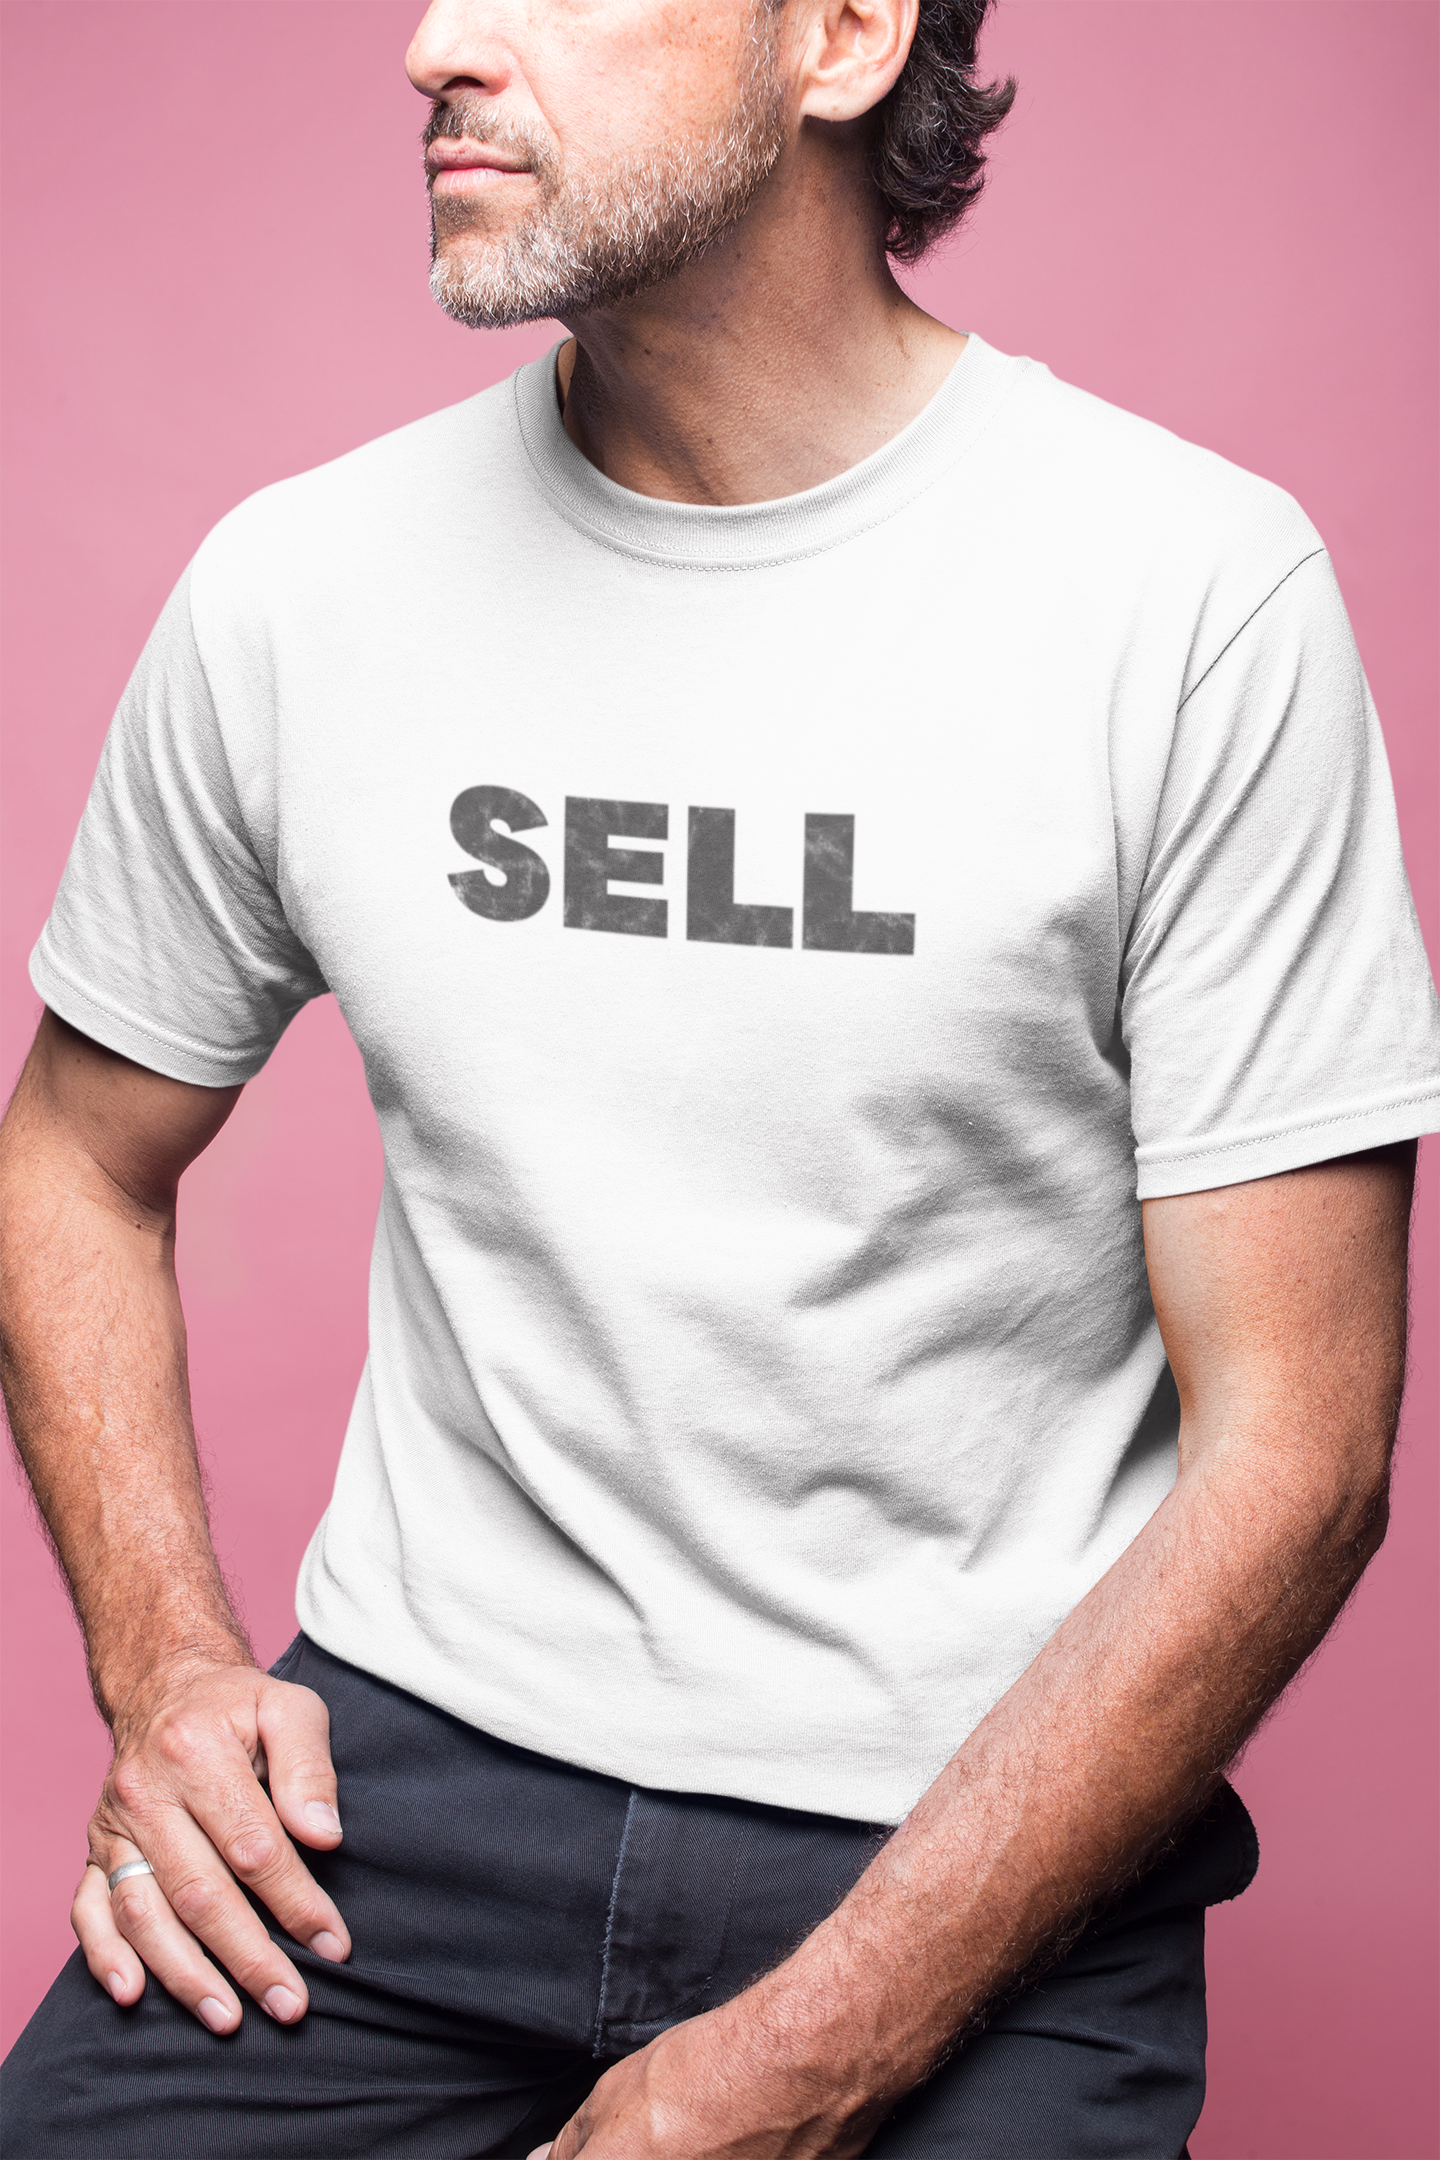 closeup-of-a-man-wearing-a-tshirt-mockup-in-a-pink-room-a20324.png